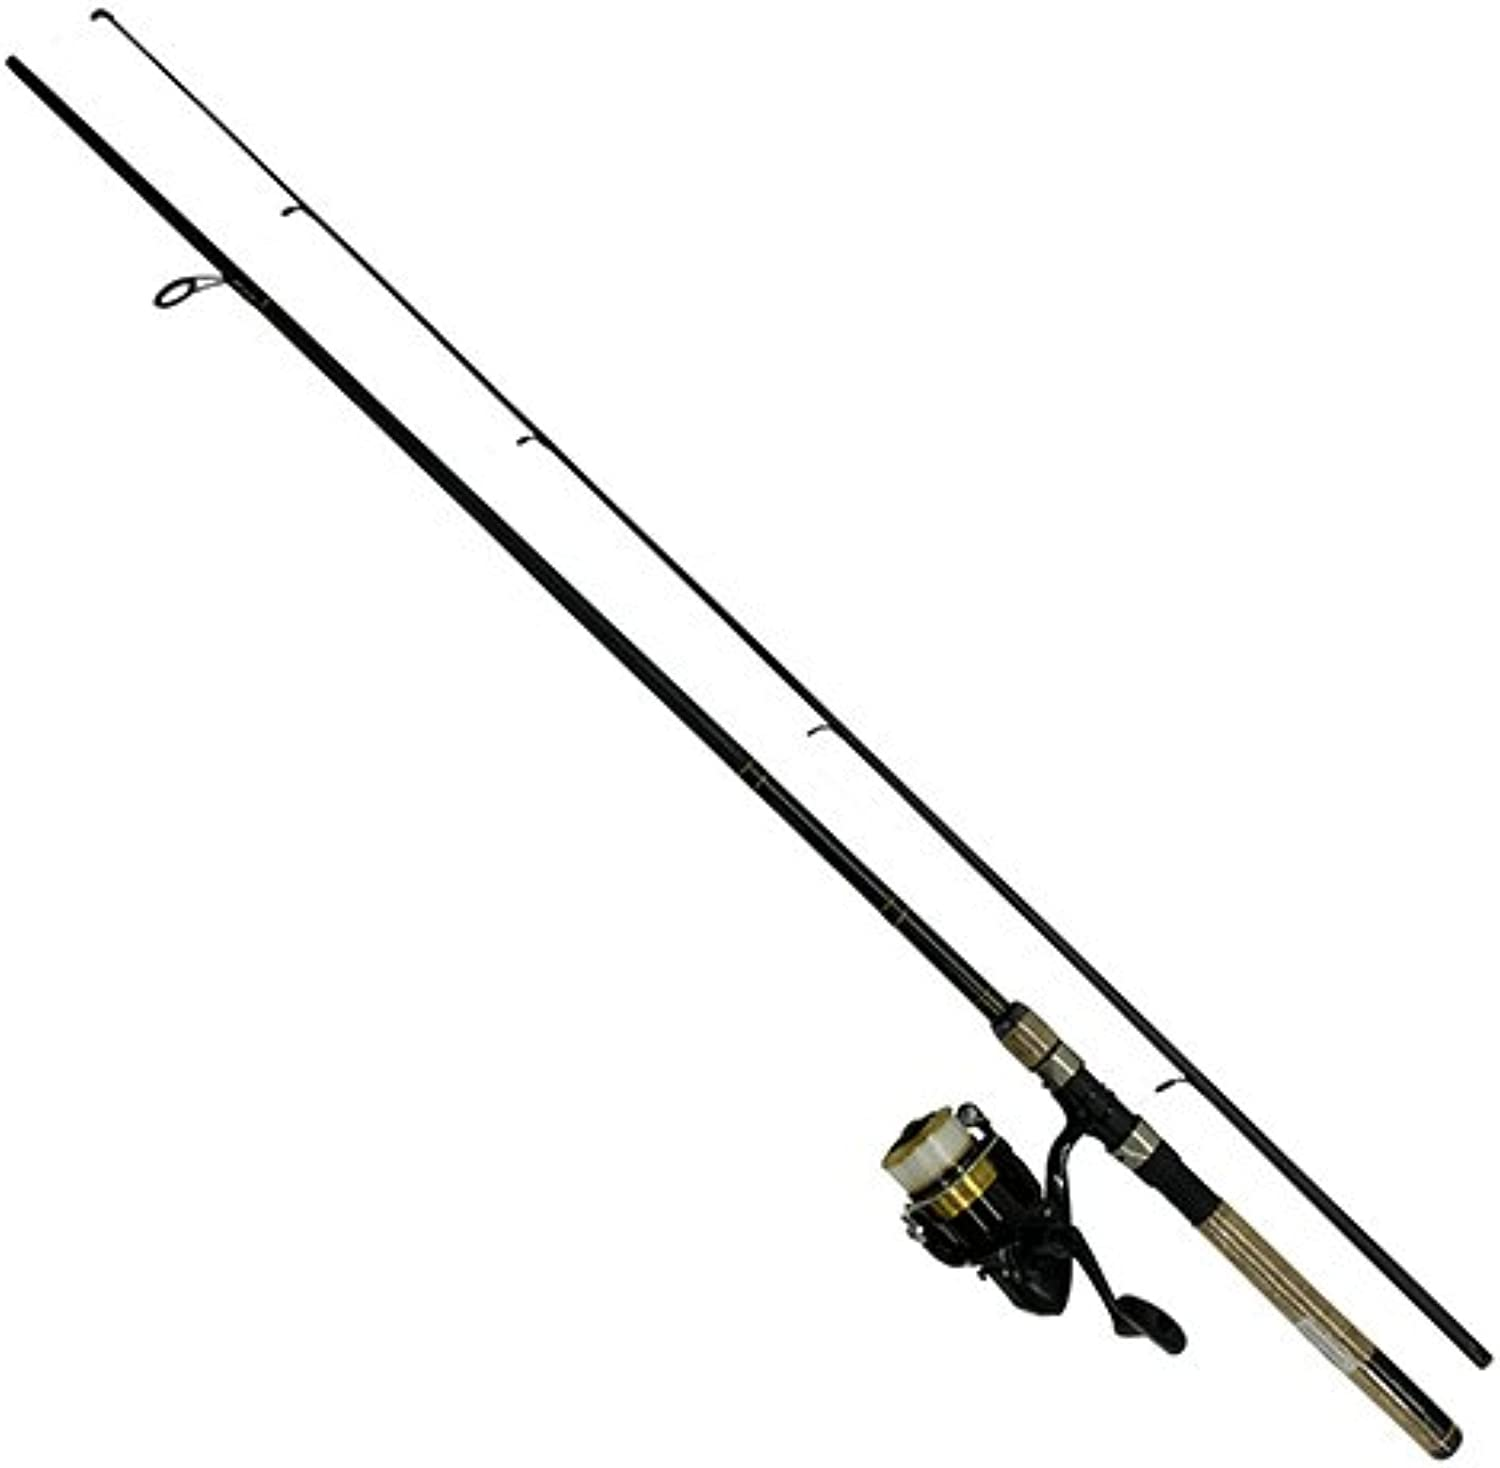 Daiwa DSK30B F702M12C DShock Reel & Rod Combo With Line 2.1m Medium Action, Black gold